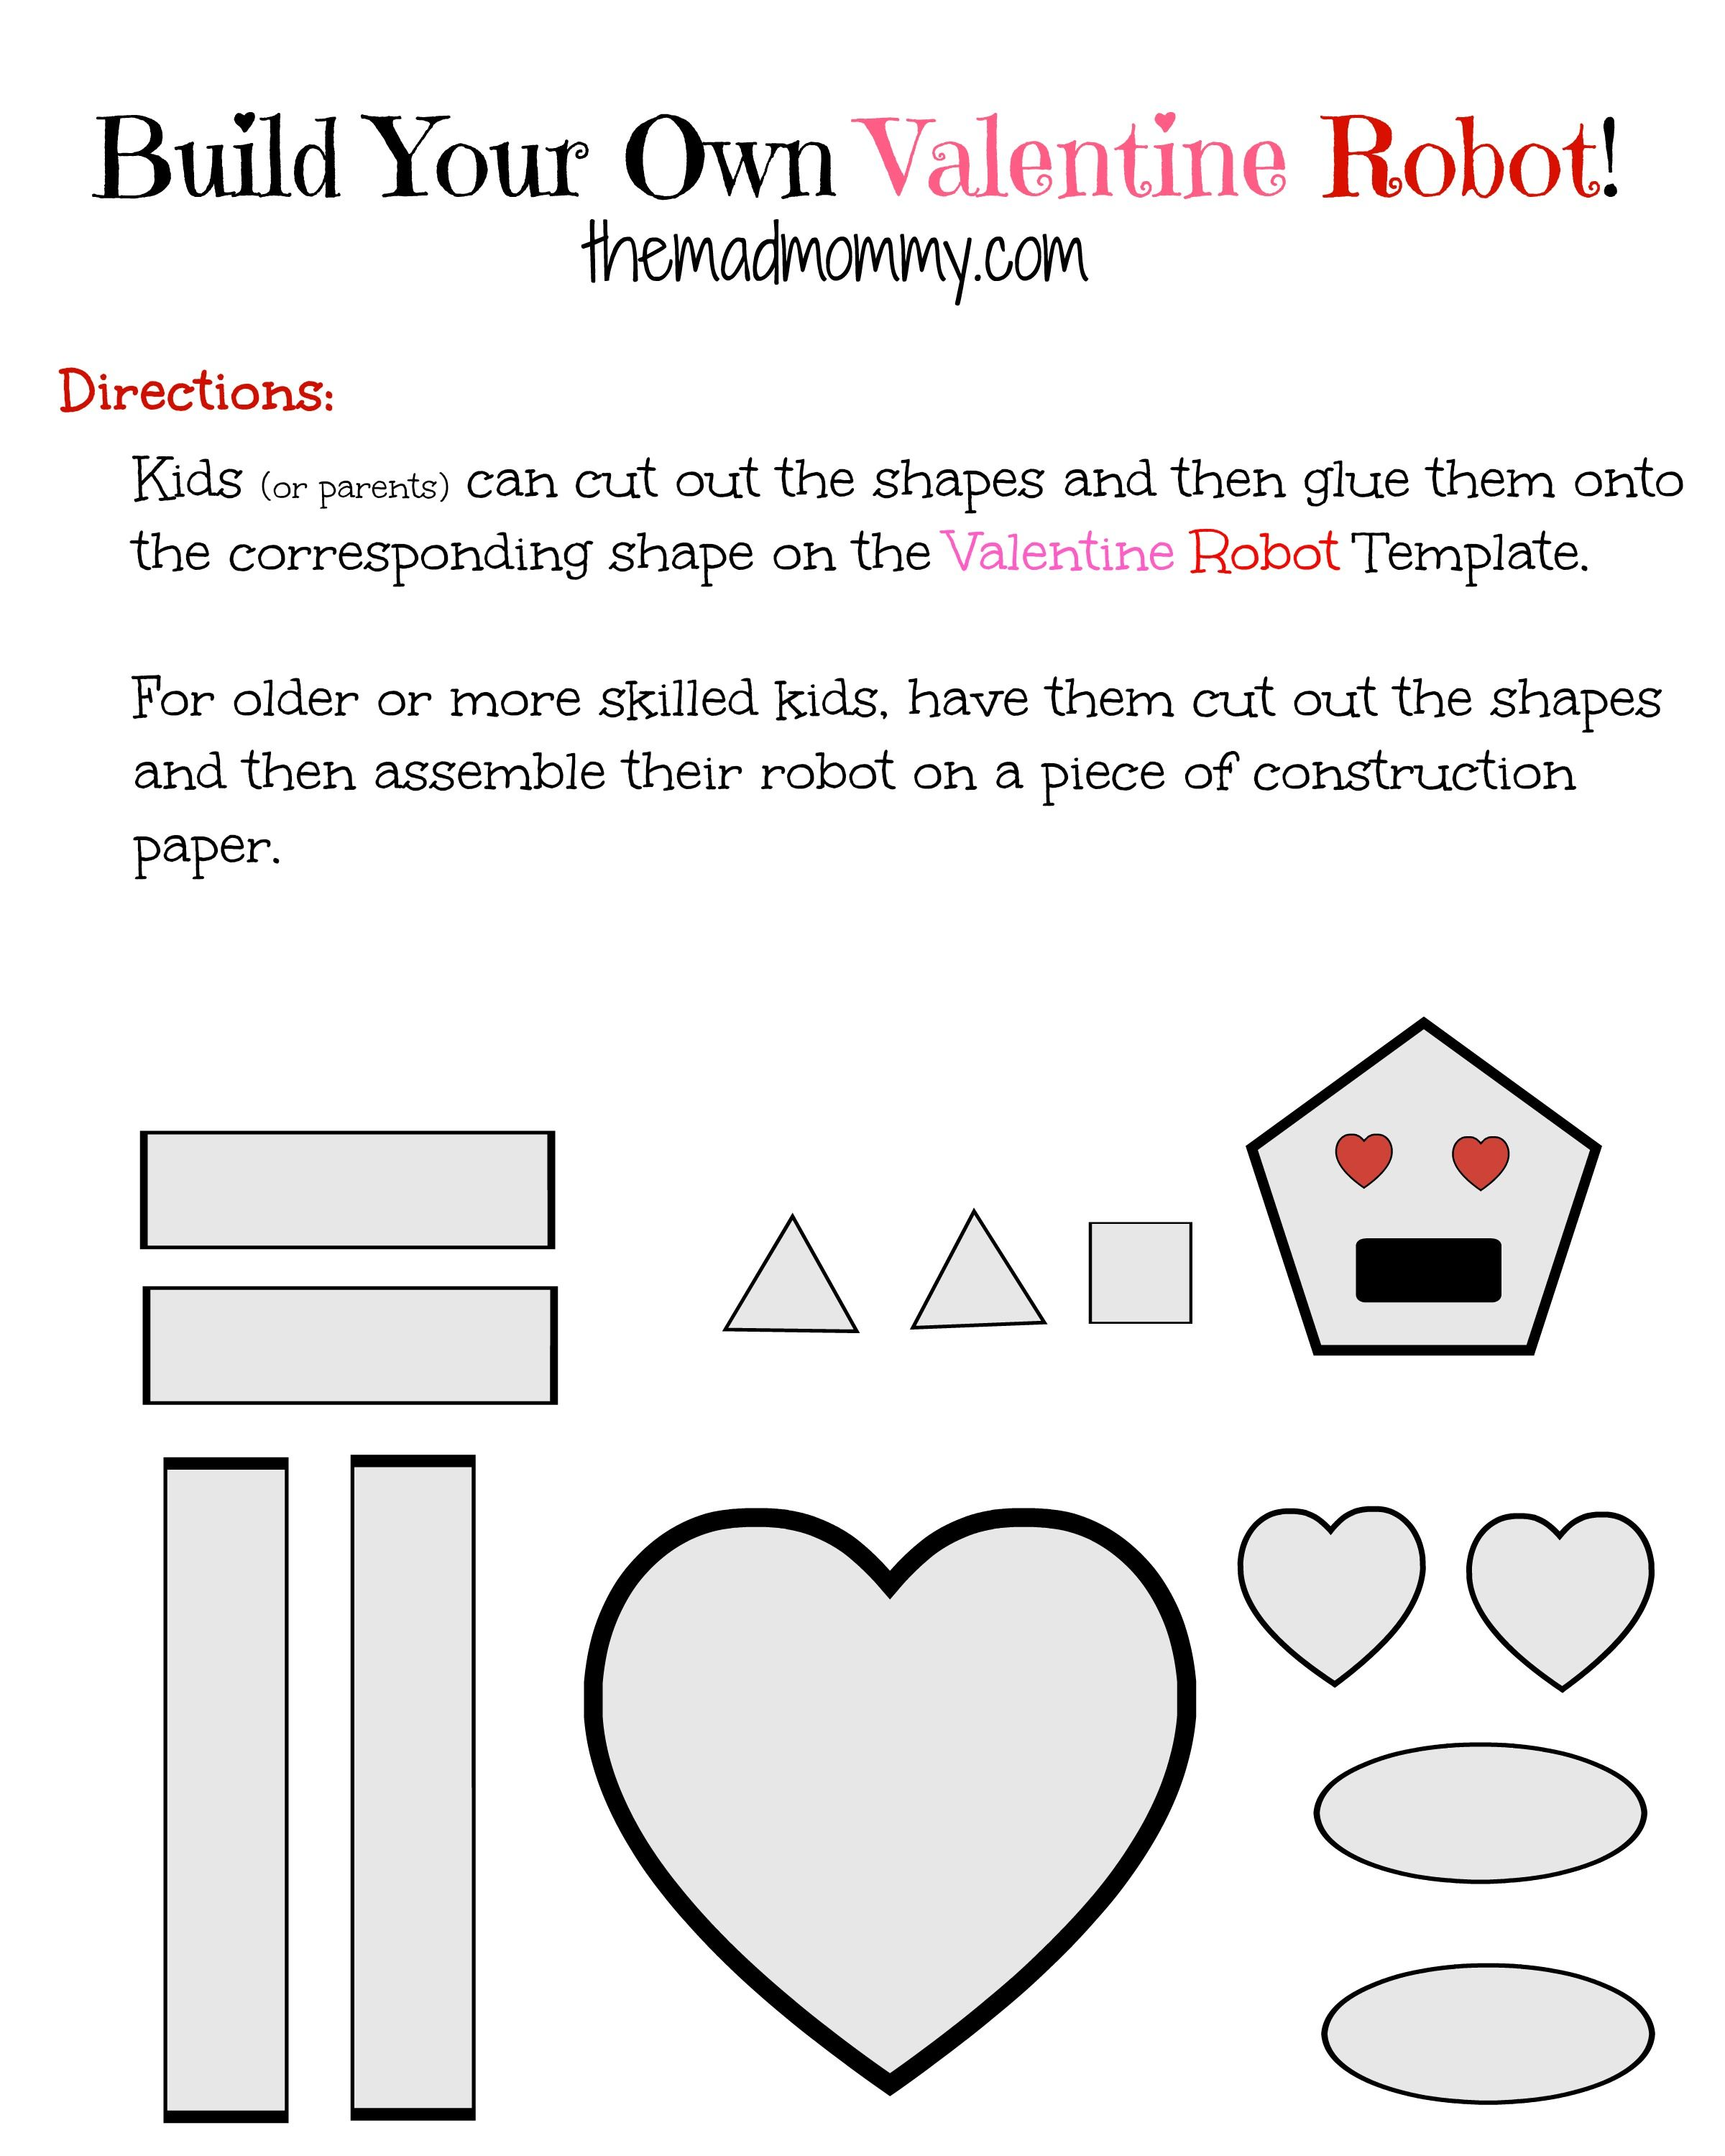 Build Your Own Robot Valentine Printable